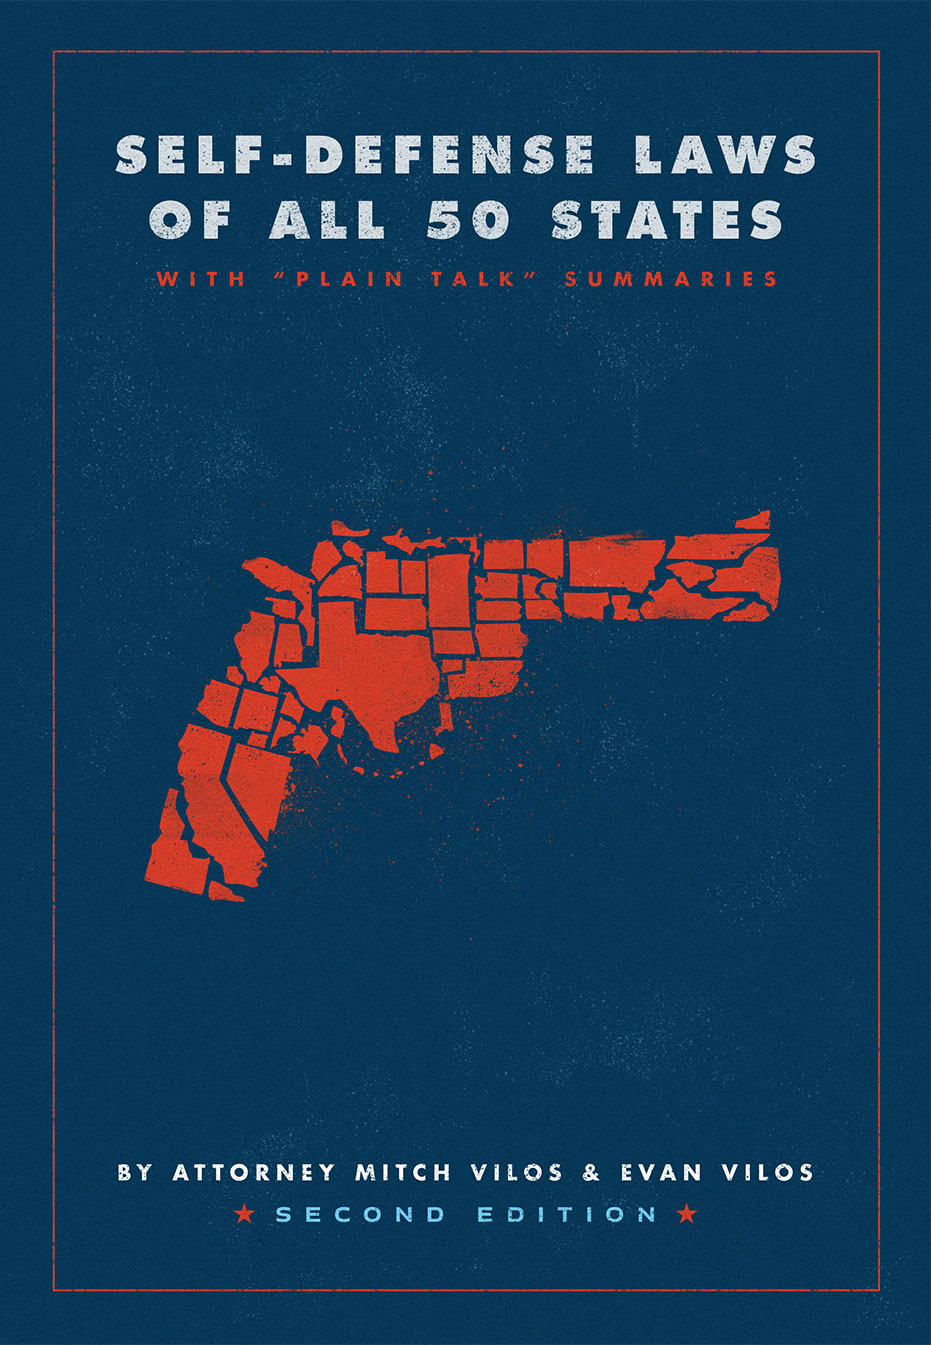 Self-Defense-Laws-Of-All-50-States